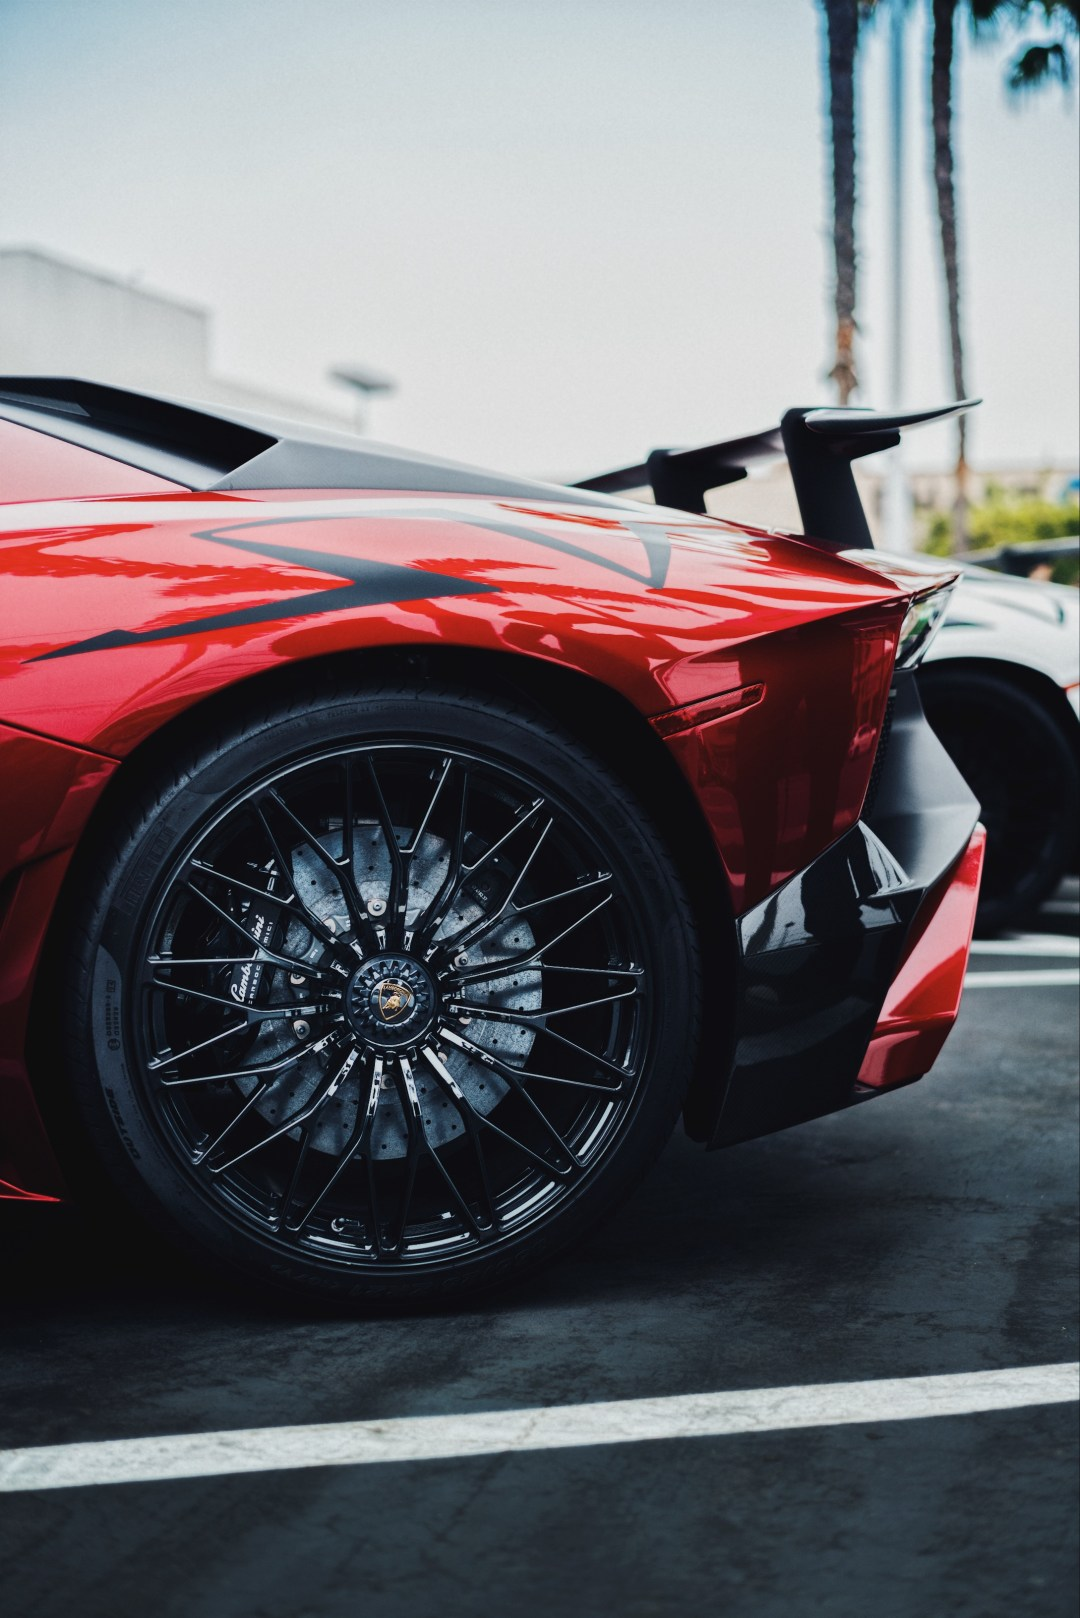 Lamborghini Aventador Cars Wallpapers Car Red Sports Car And Wheel Hd Photo By Chris Nguyen